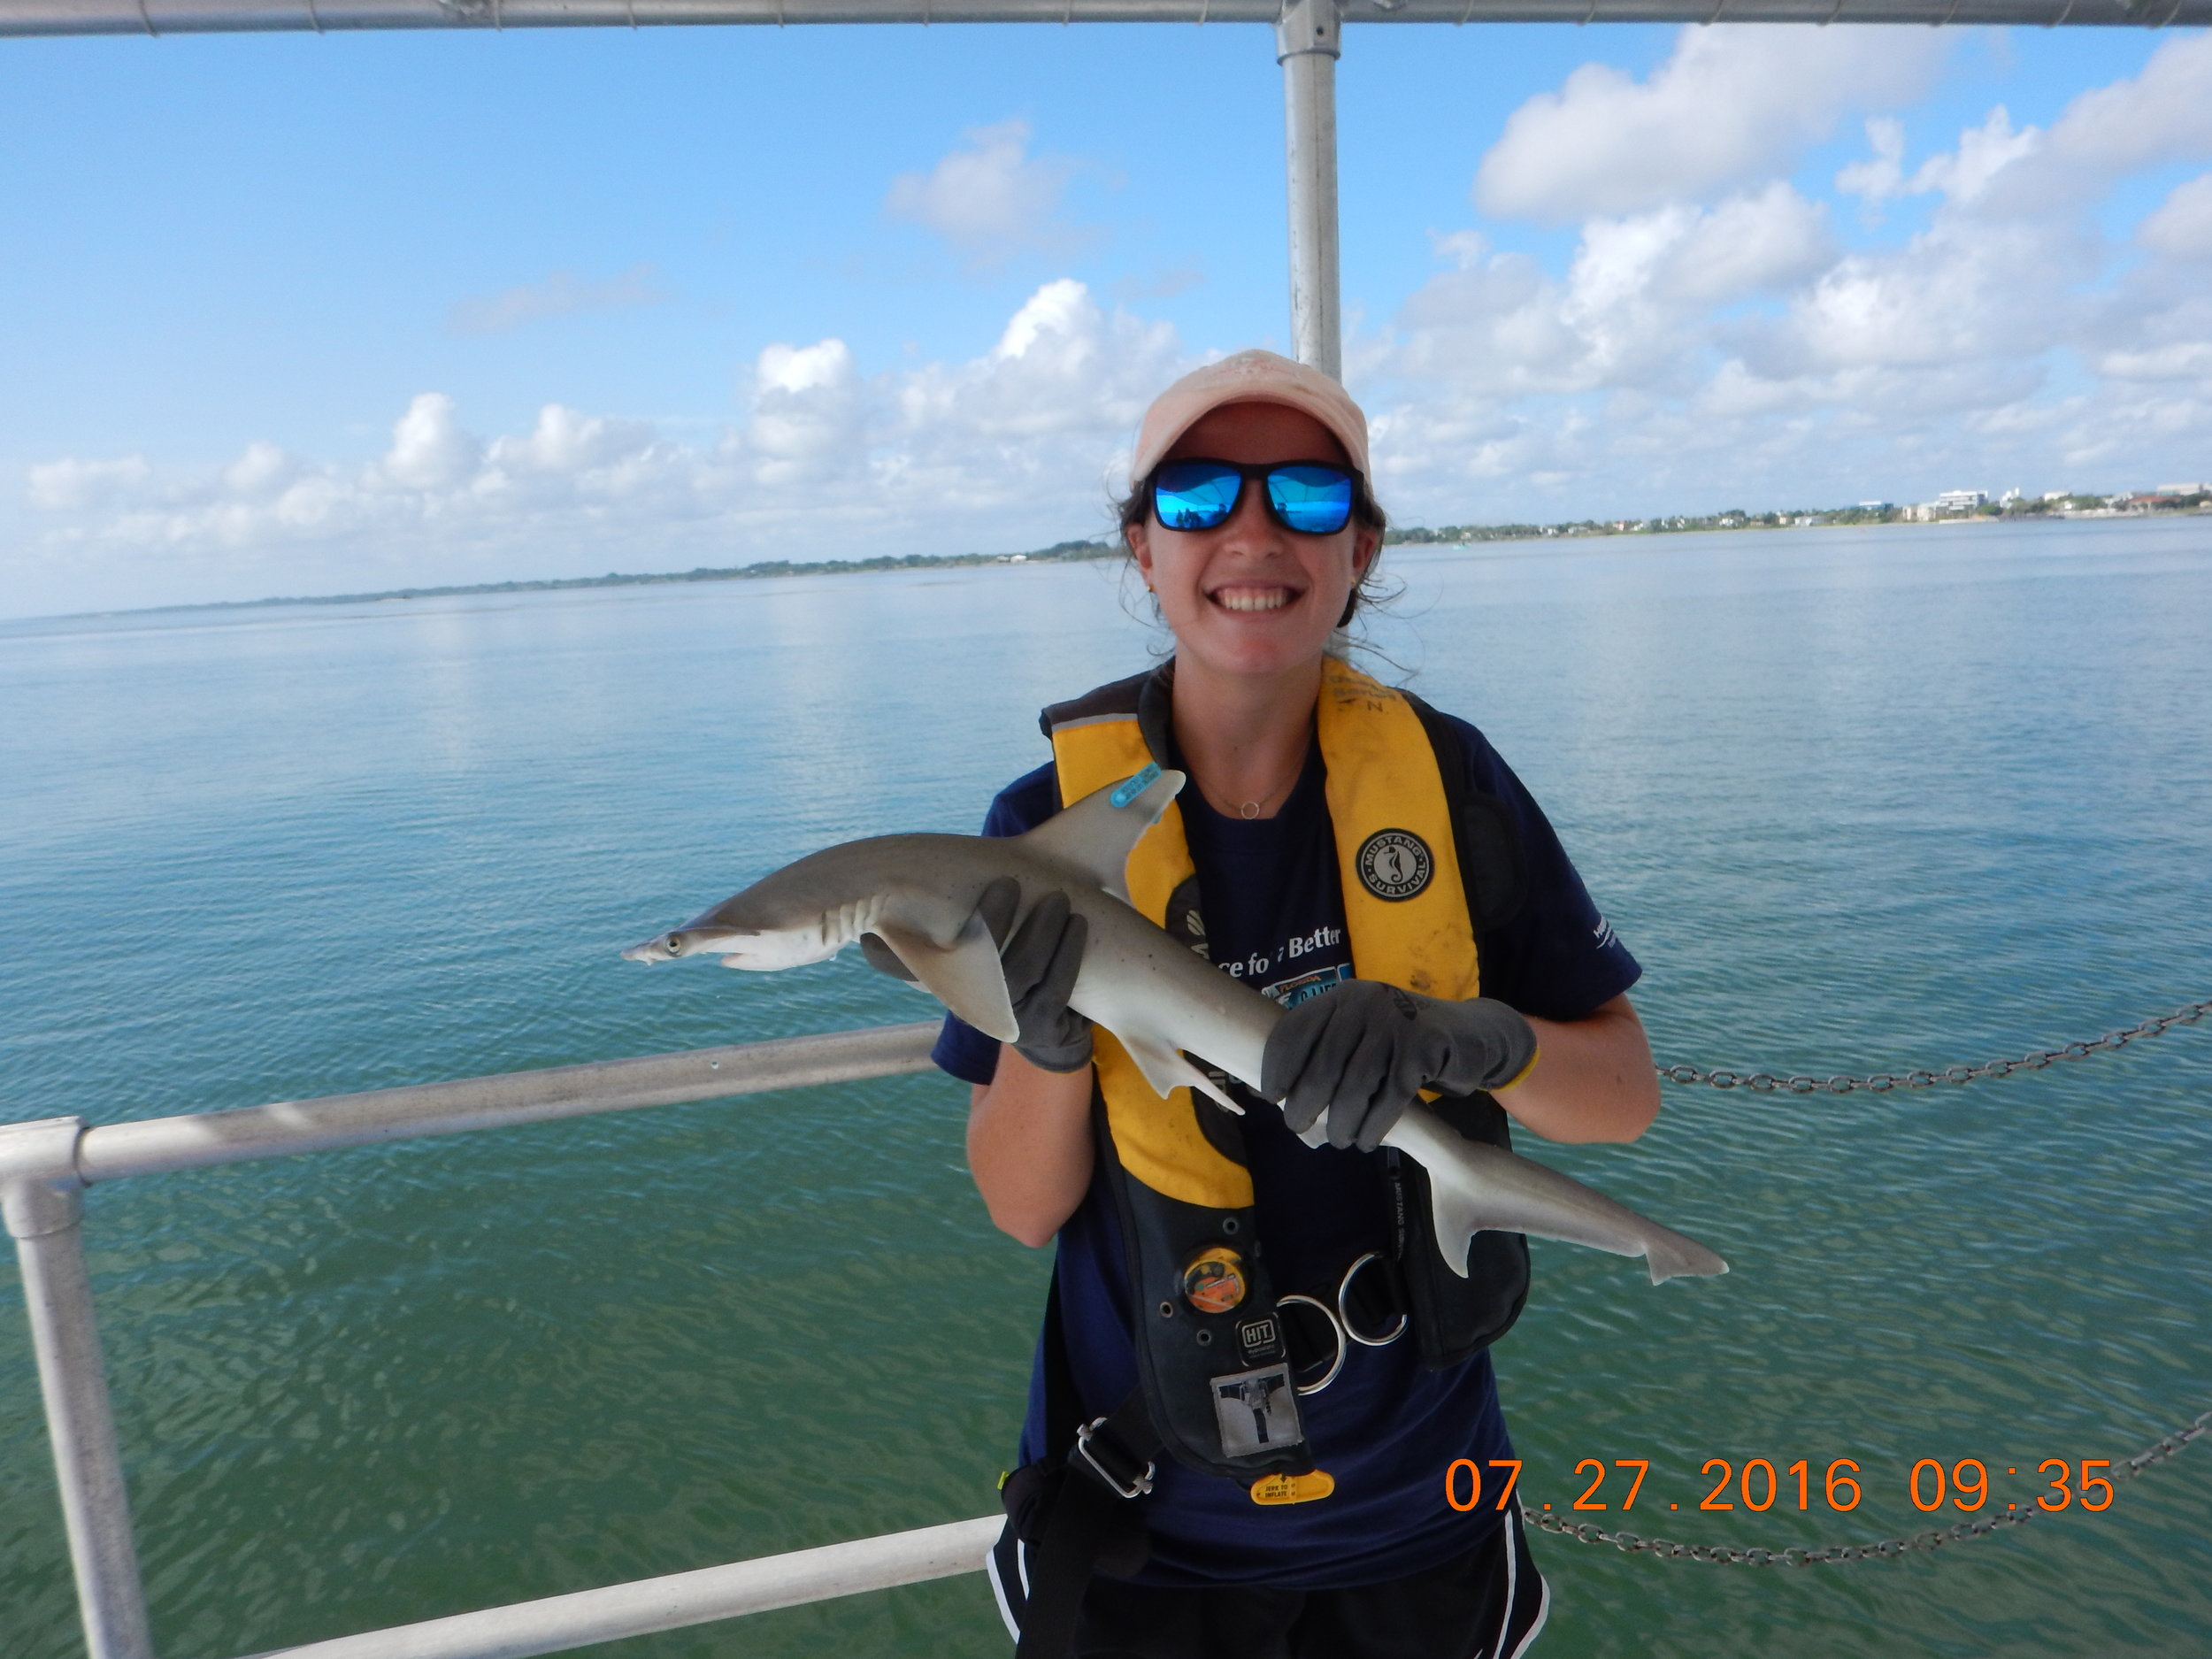 Sara Barrett - Sara Barrett worked with us in summer 2016 as a Fisheries Ecology intern. Sara studied at the University of Tampa, where she graduated in May 2017.Sara is now a graduate student at the University of Southern Mississippi, working under the supervision of Dr. Jake Schaefer.